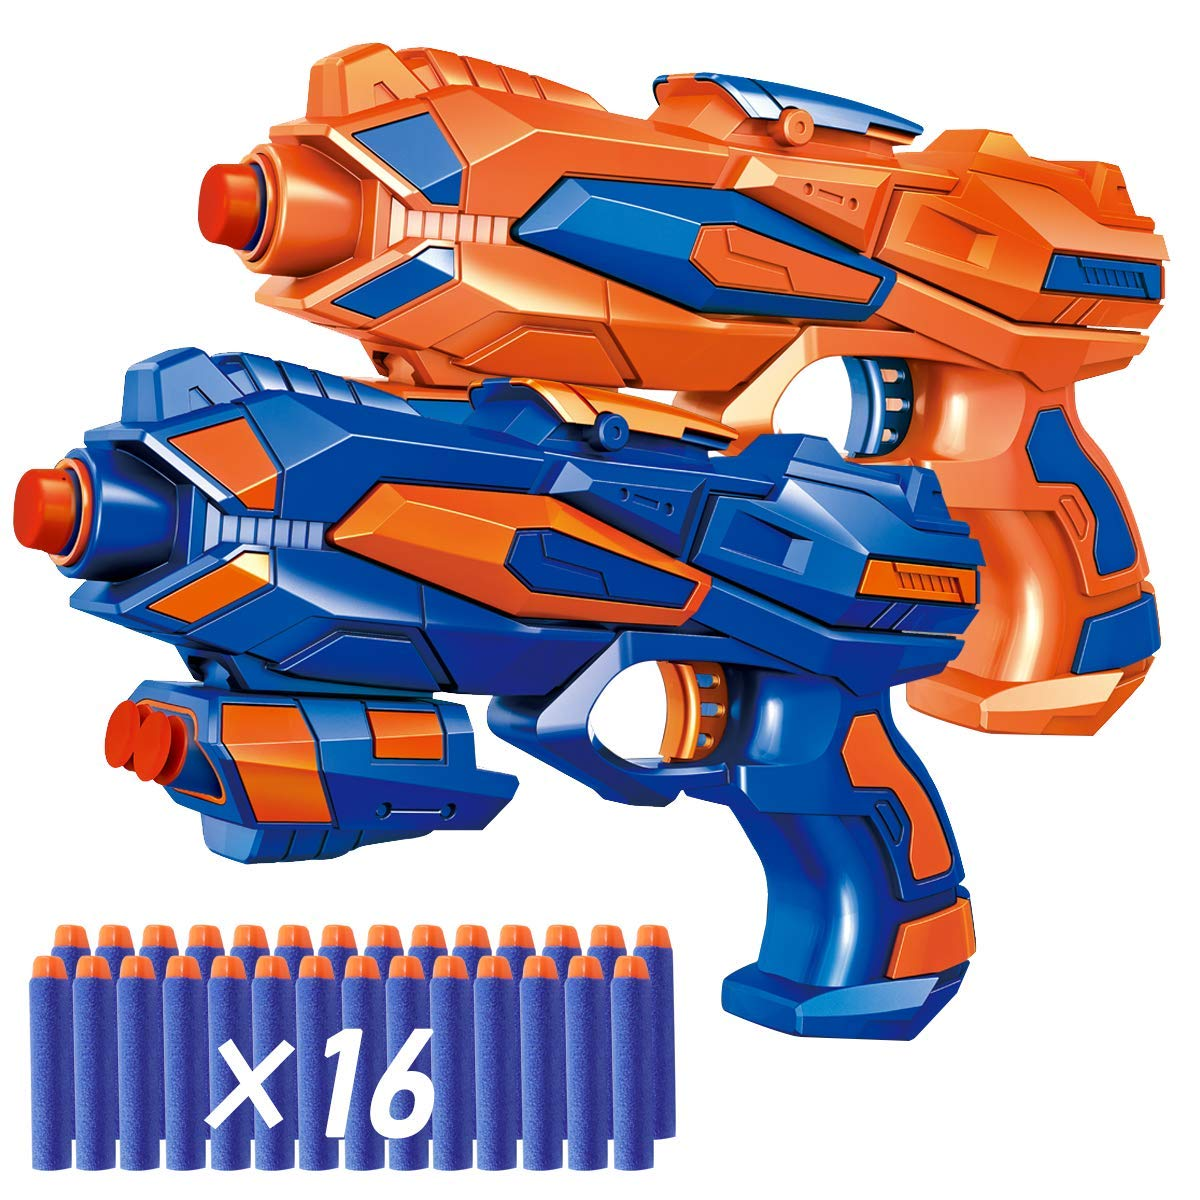 POKONBOY 2 Pack Blaster Guns Toy Guns for Boys with 16 Pack Refill Soft Foam Darts for Kids Birthday Gifts Party Supplies Hand Gun Toys for 4 5 6 7 Year Old Boys